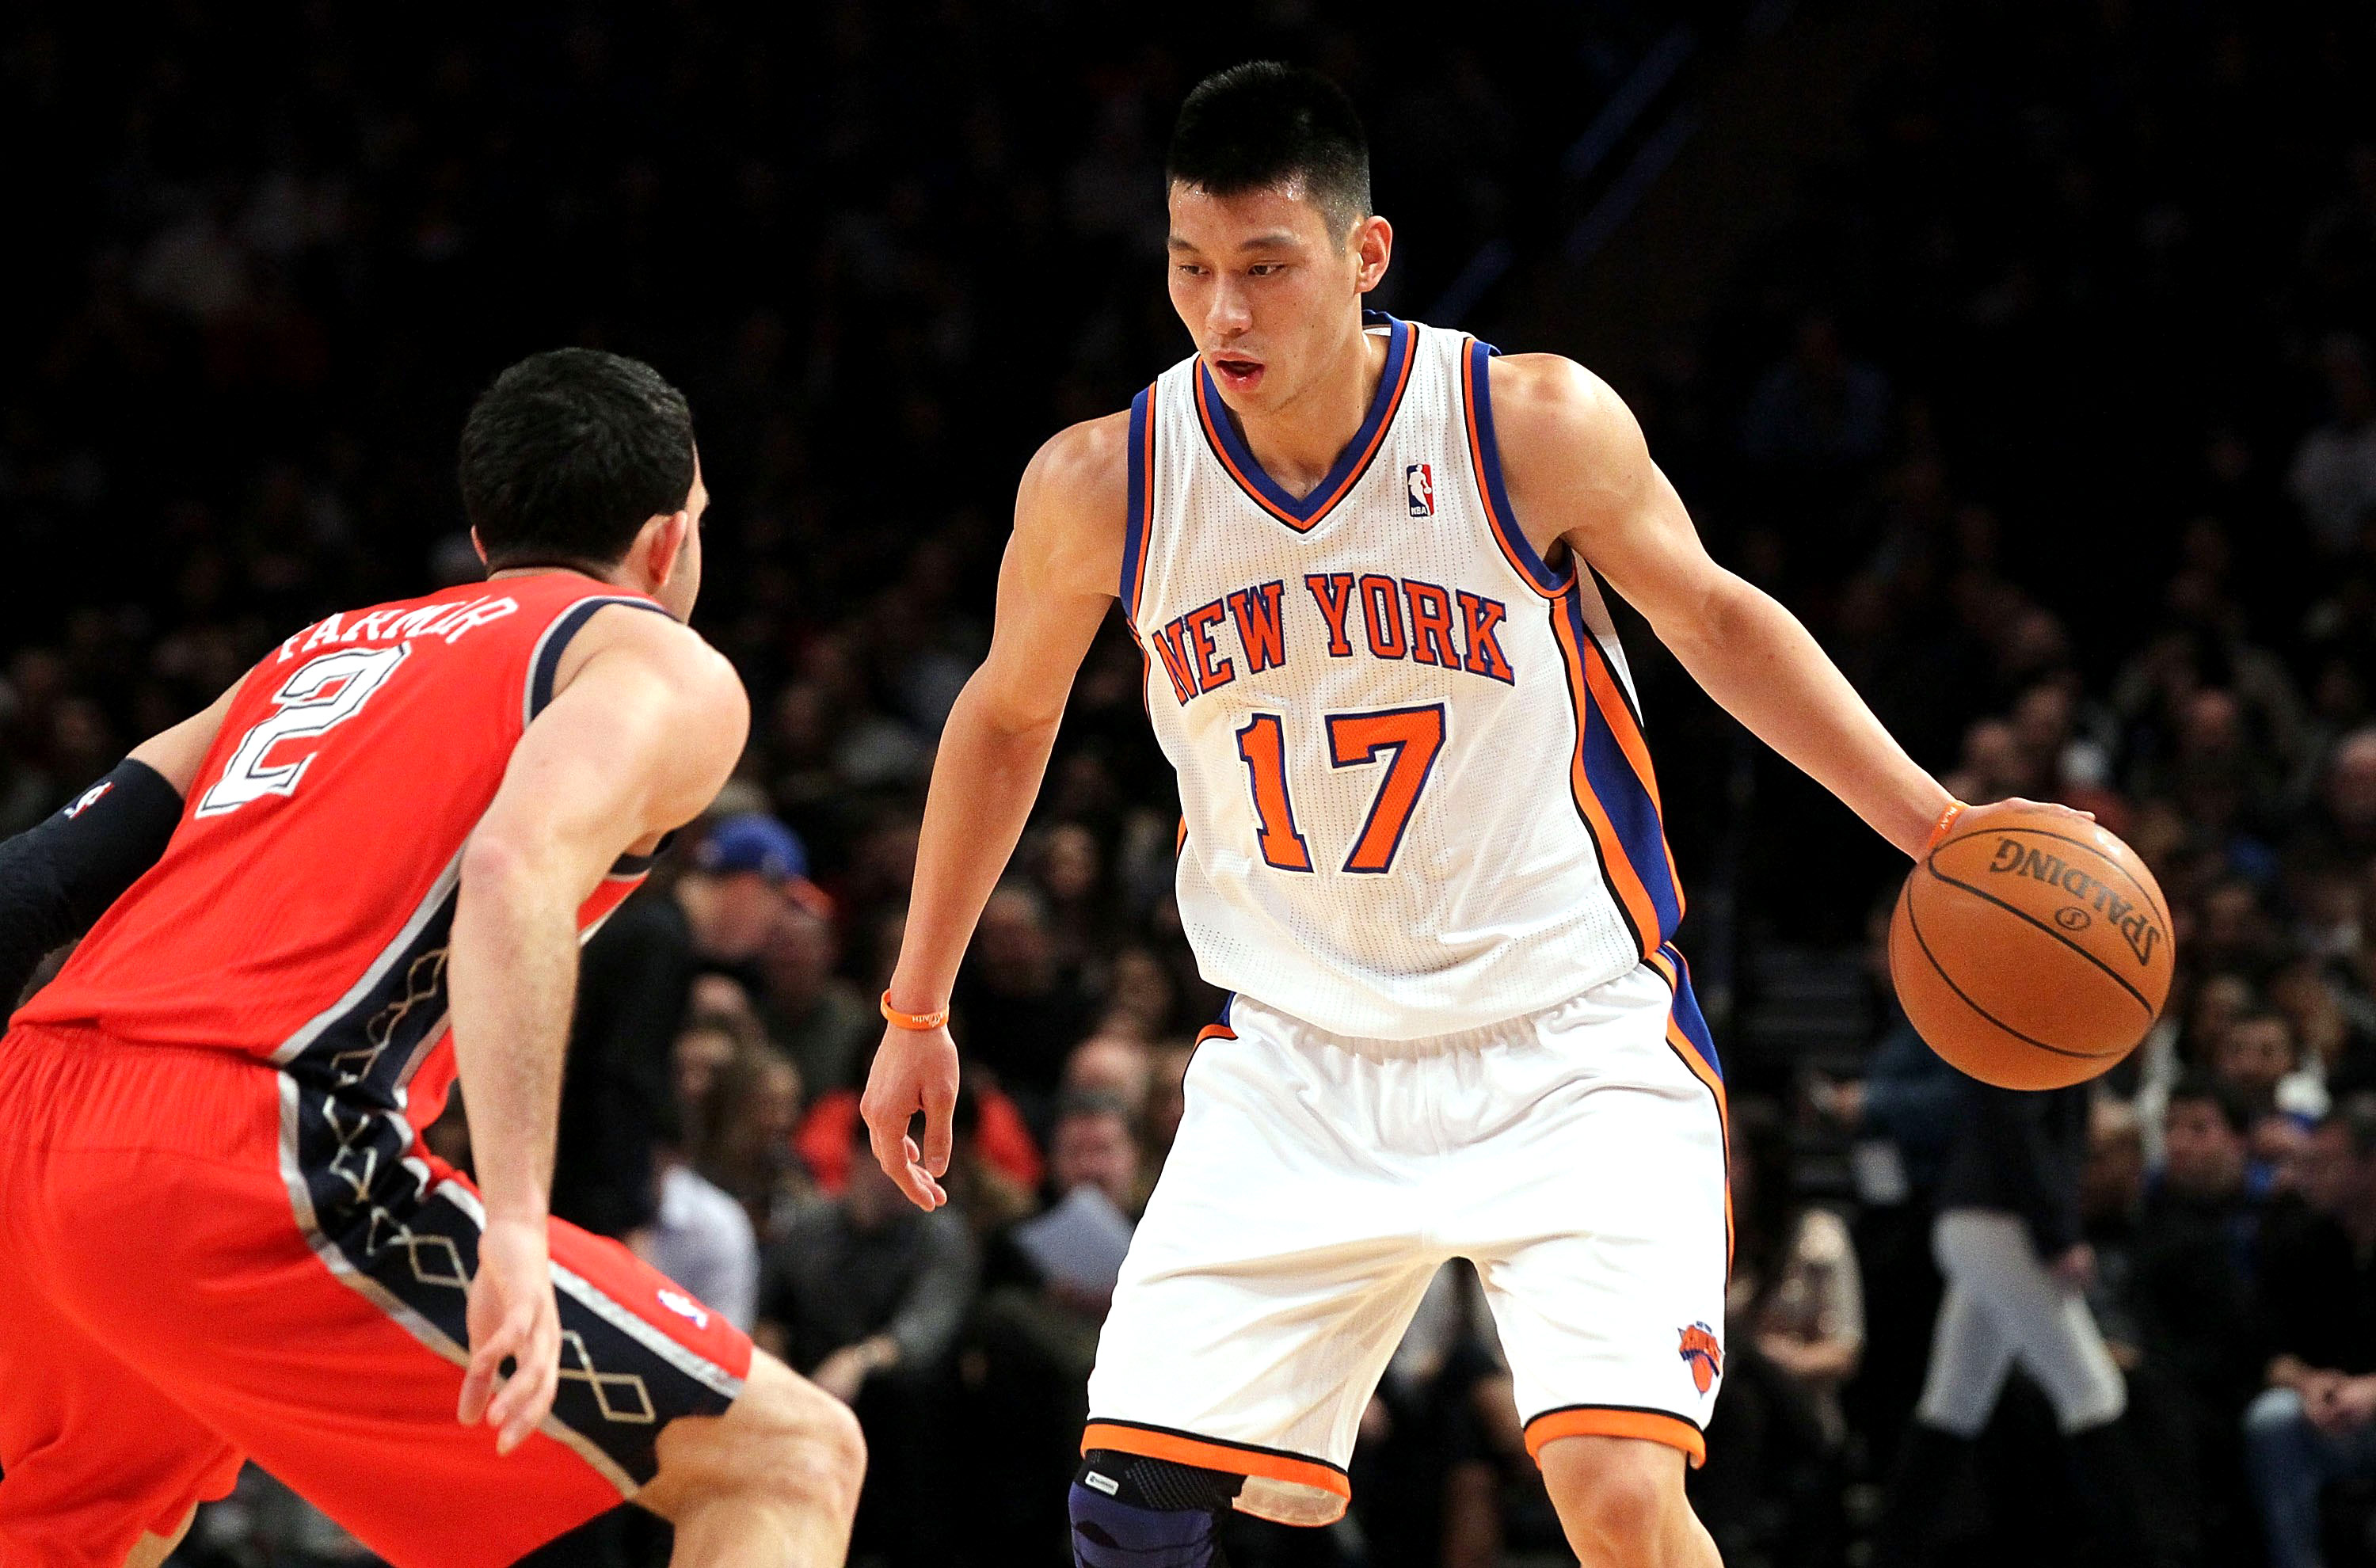 Linsanity: Linsanity Began One Year Ago Today -- NYMag